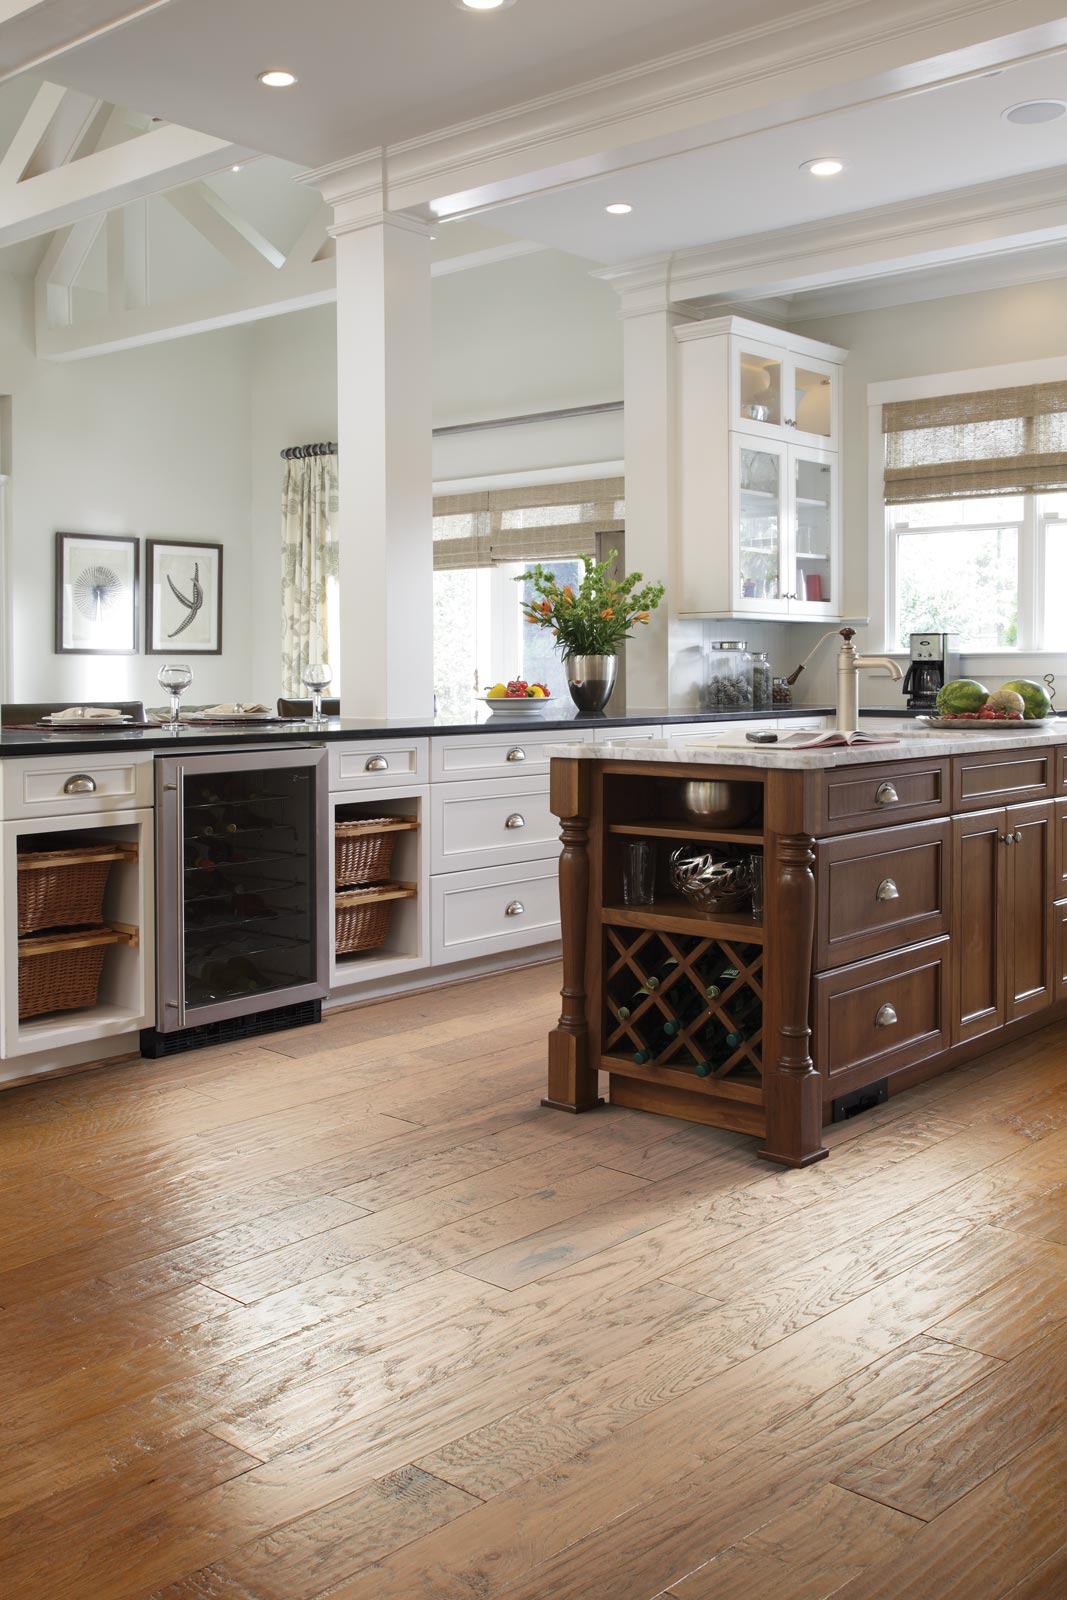 hardwood floors kitchen. Hardwood-floors-kitchen-3 Hardwood Floors Kitchen C